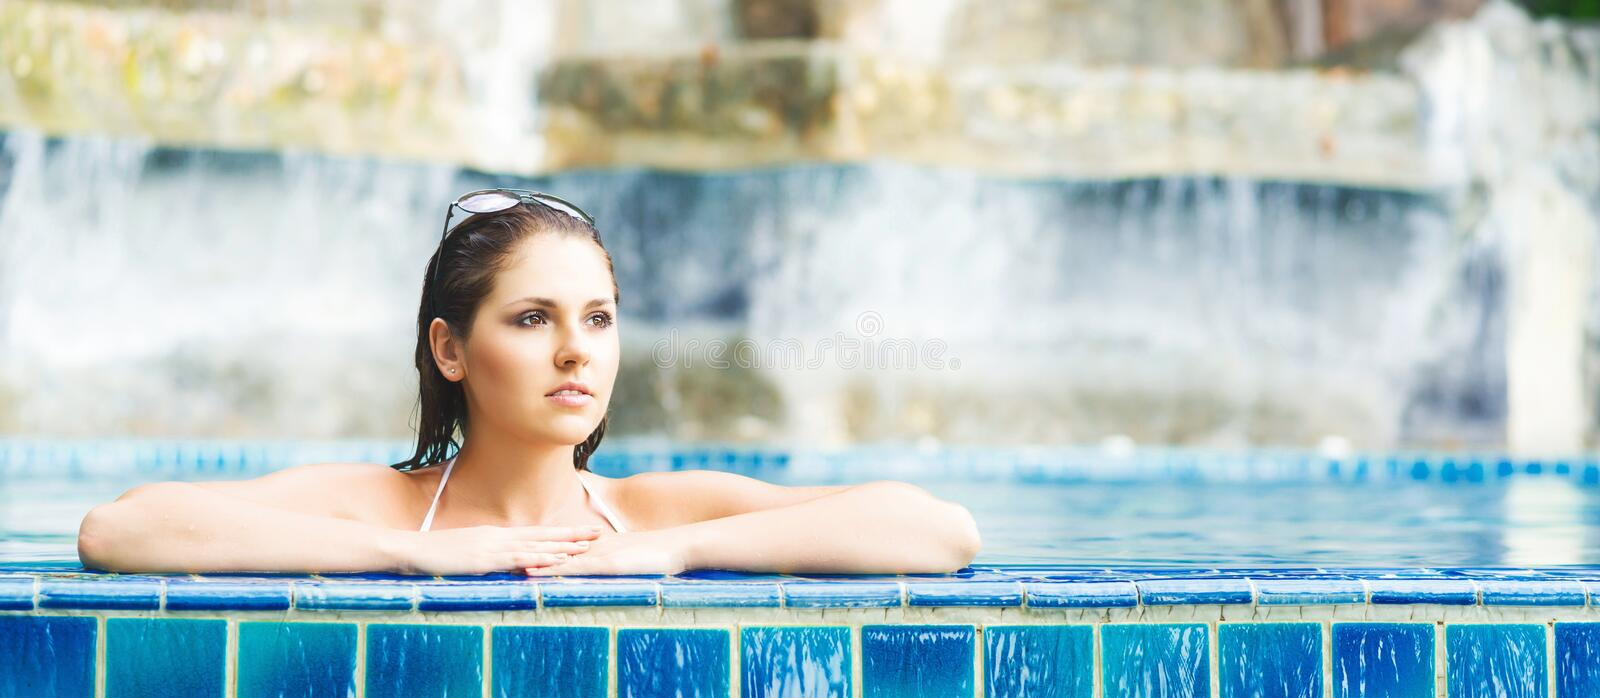 Beautiful woman relaxing in a pool at summer royalty free stock photography